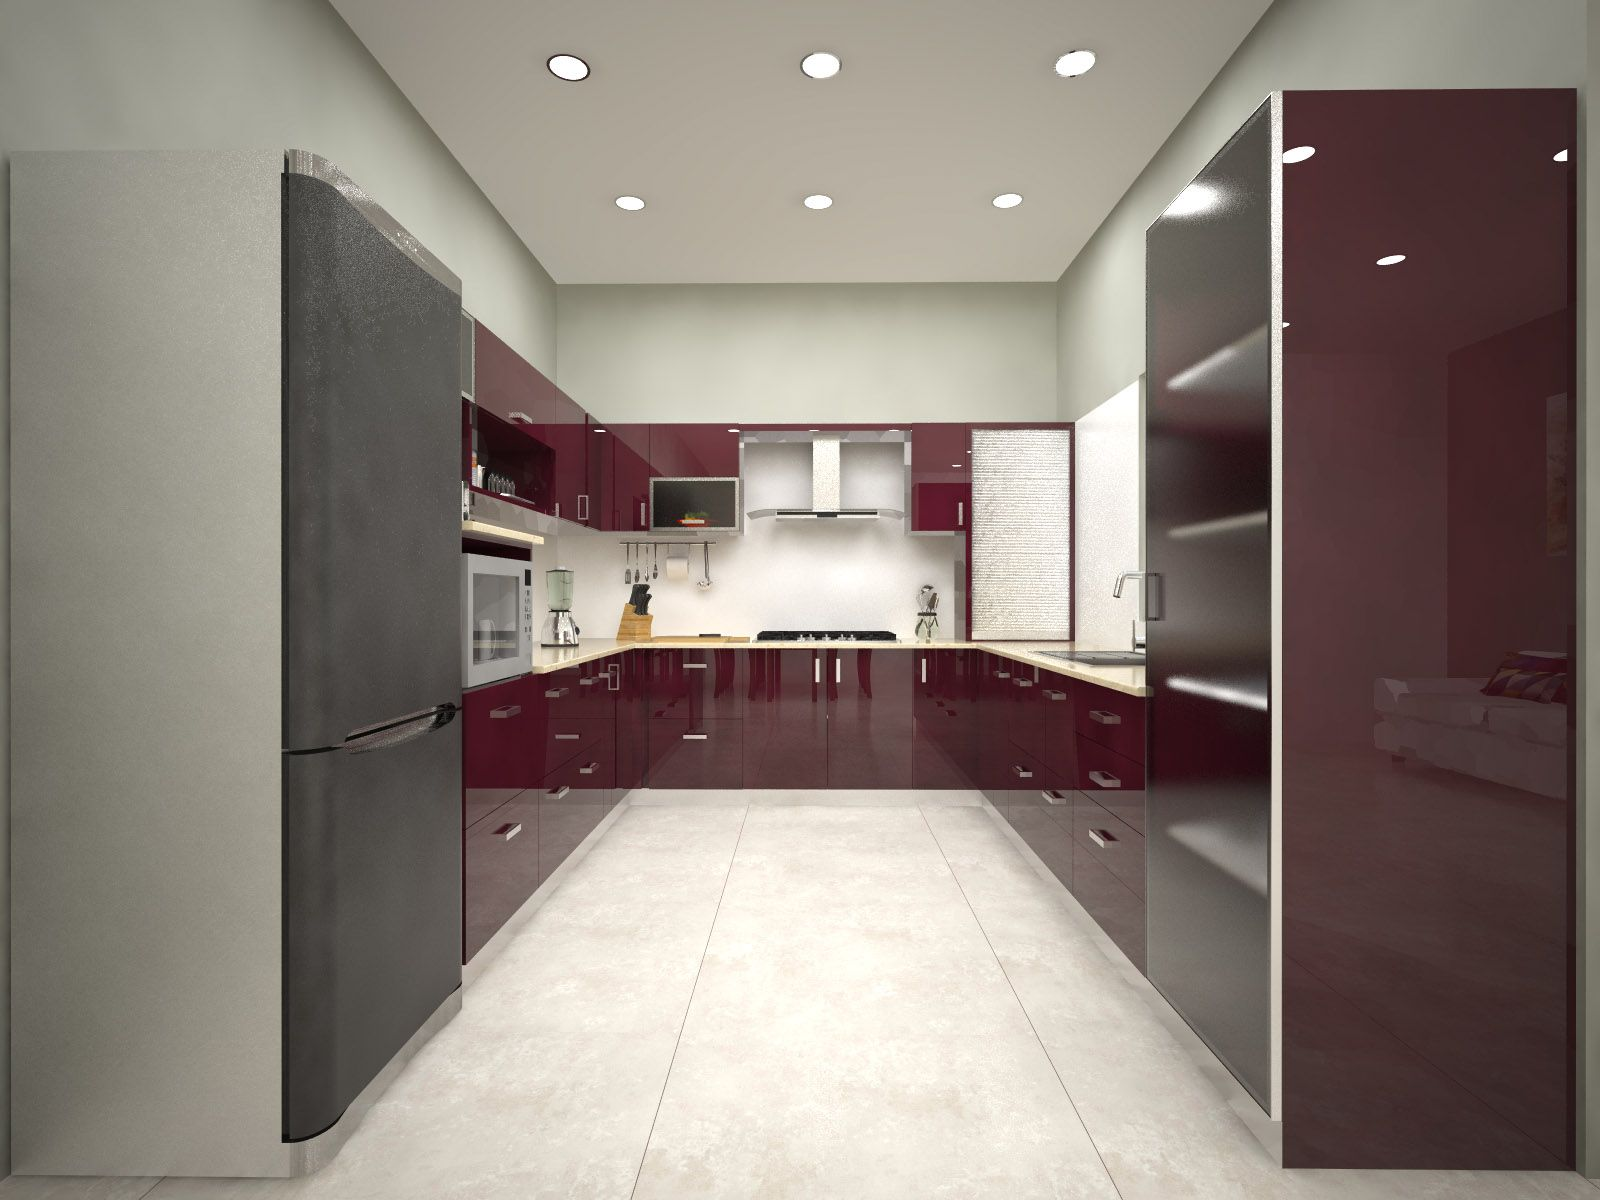 Visit Our Modular U Shaped Kitchens Interior Designers @ Homelane. Contact  +91 7676787878,